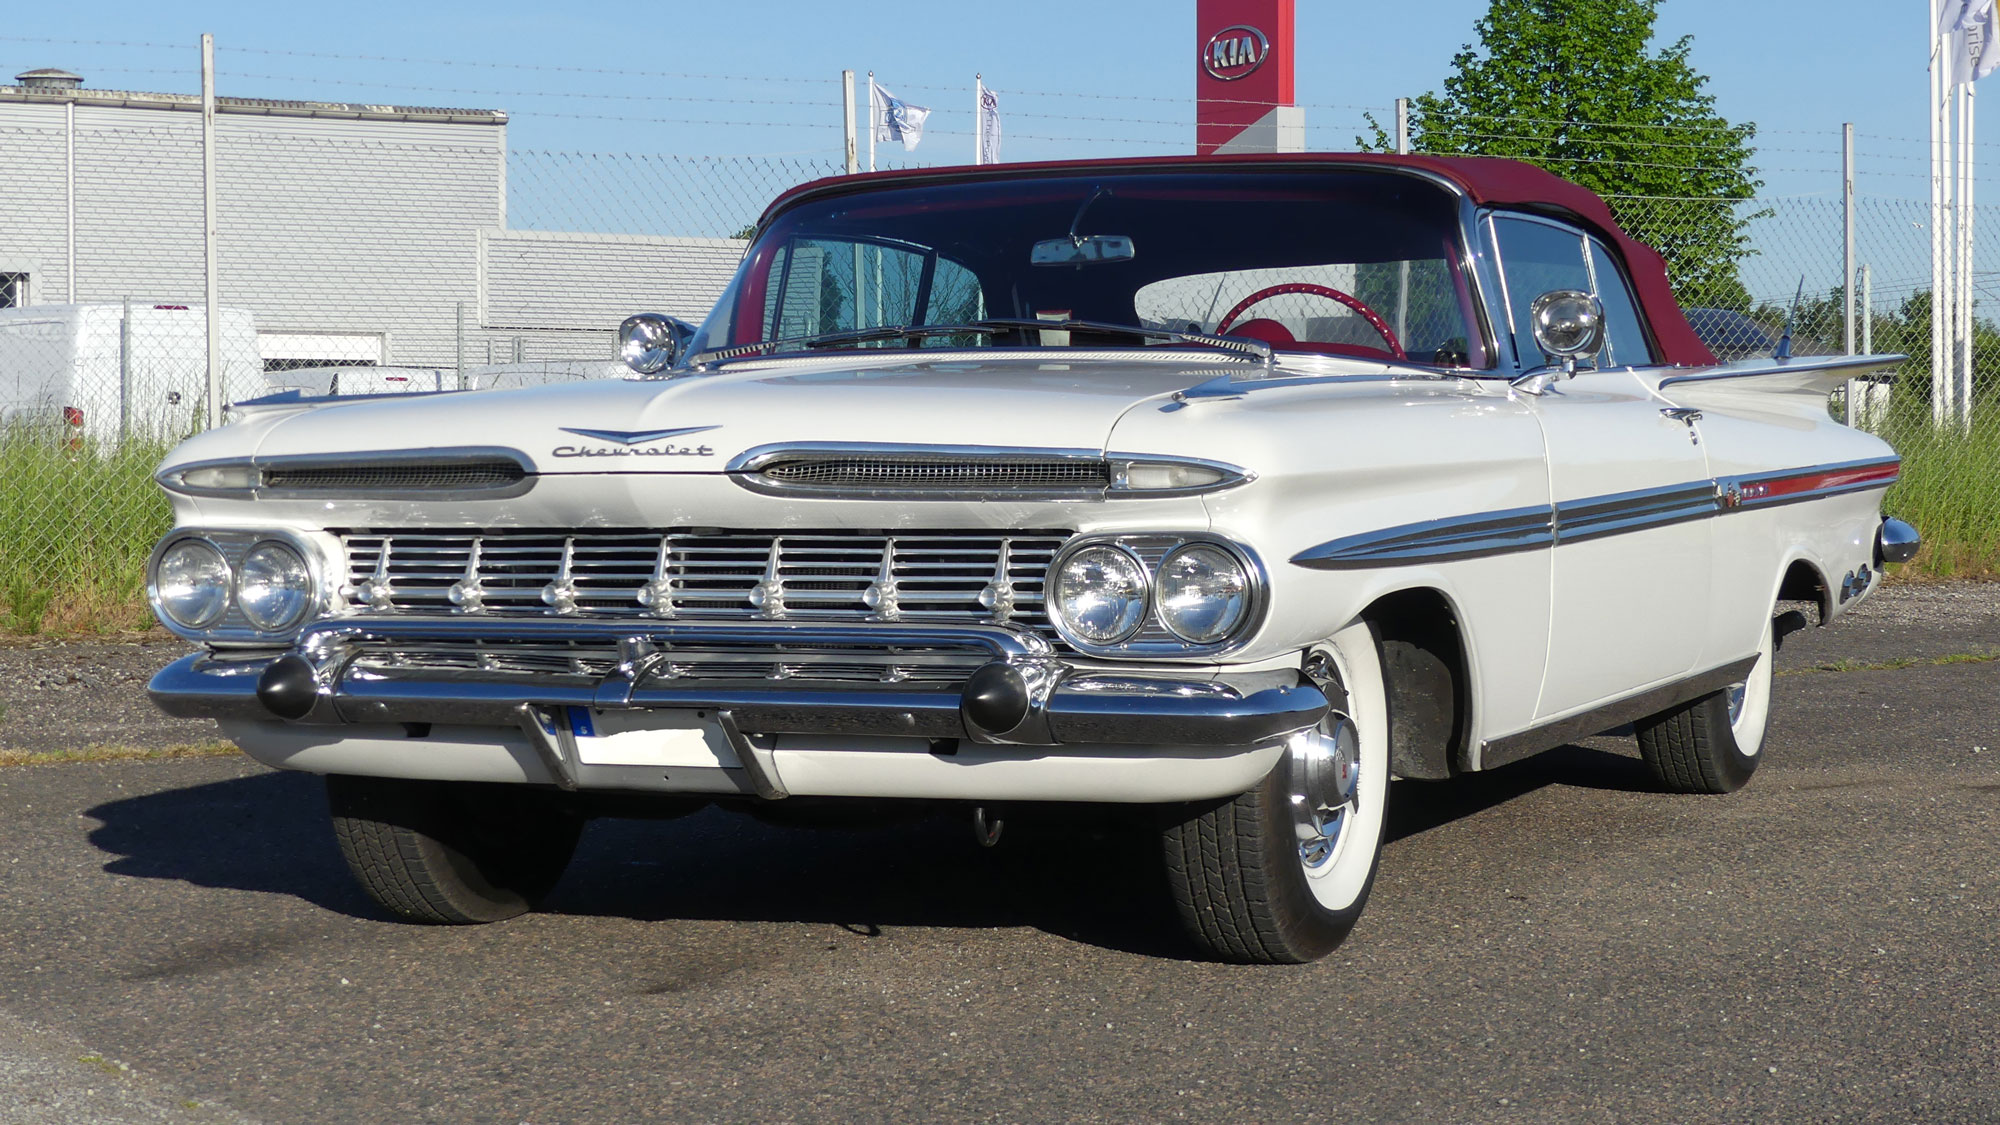 Chevrolet Impala 1959 Convertible on 2016 chevrolet impala